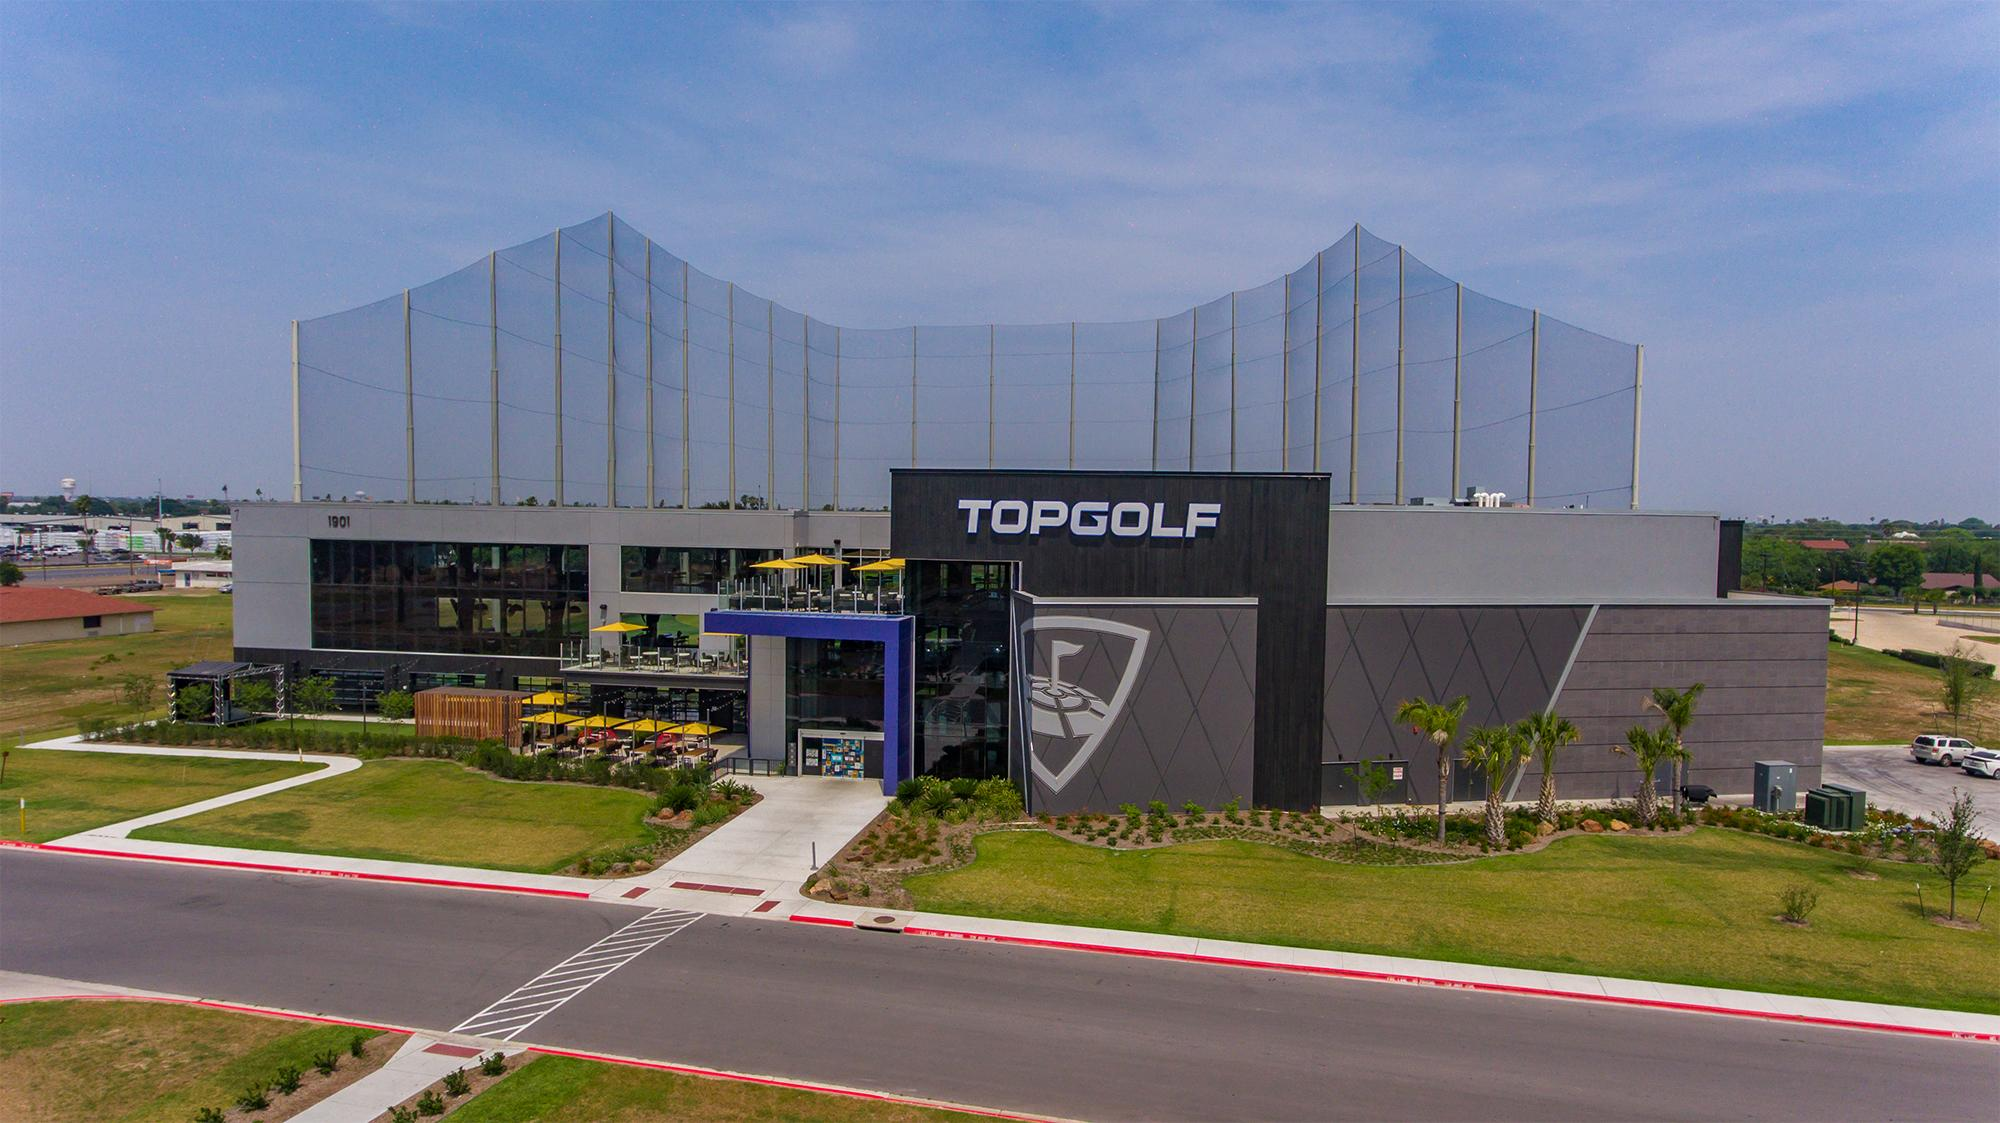 NBMBAA Indianapolis Chapter Afternoon at Topgolf!